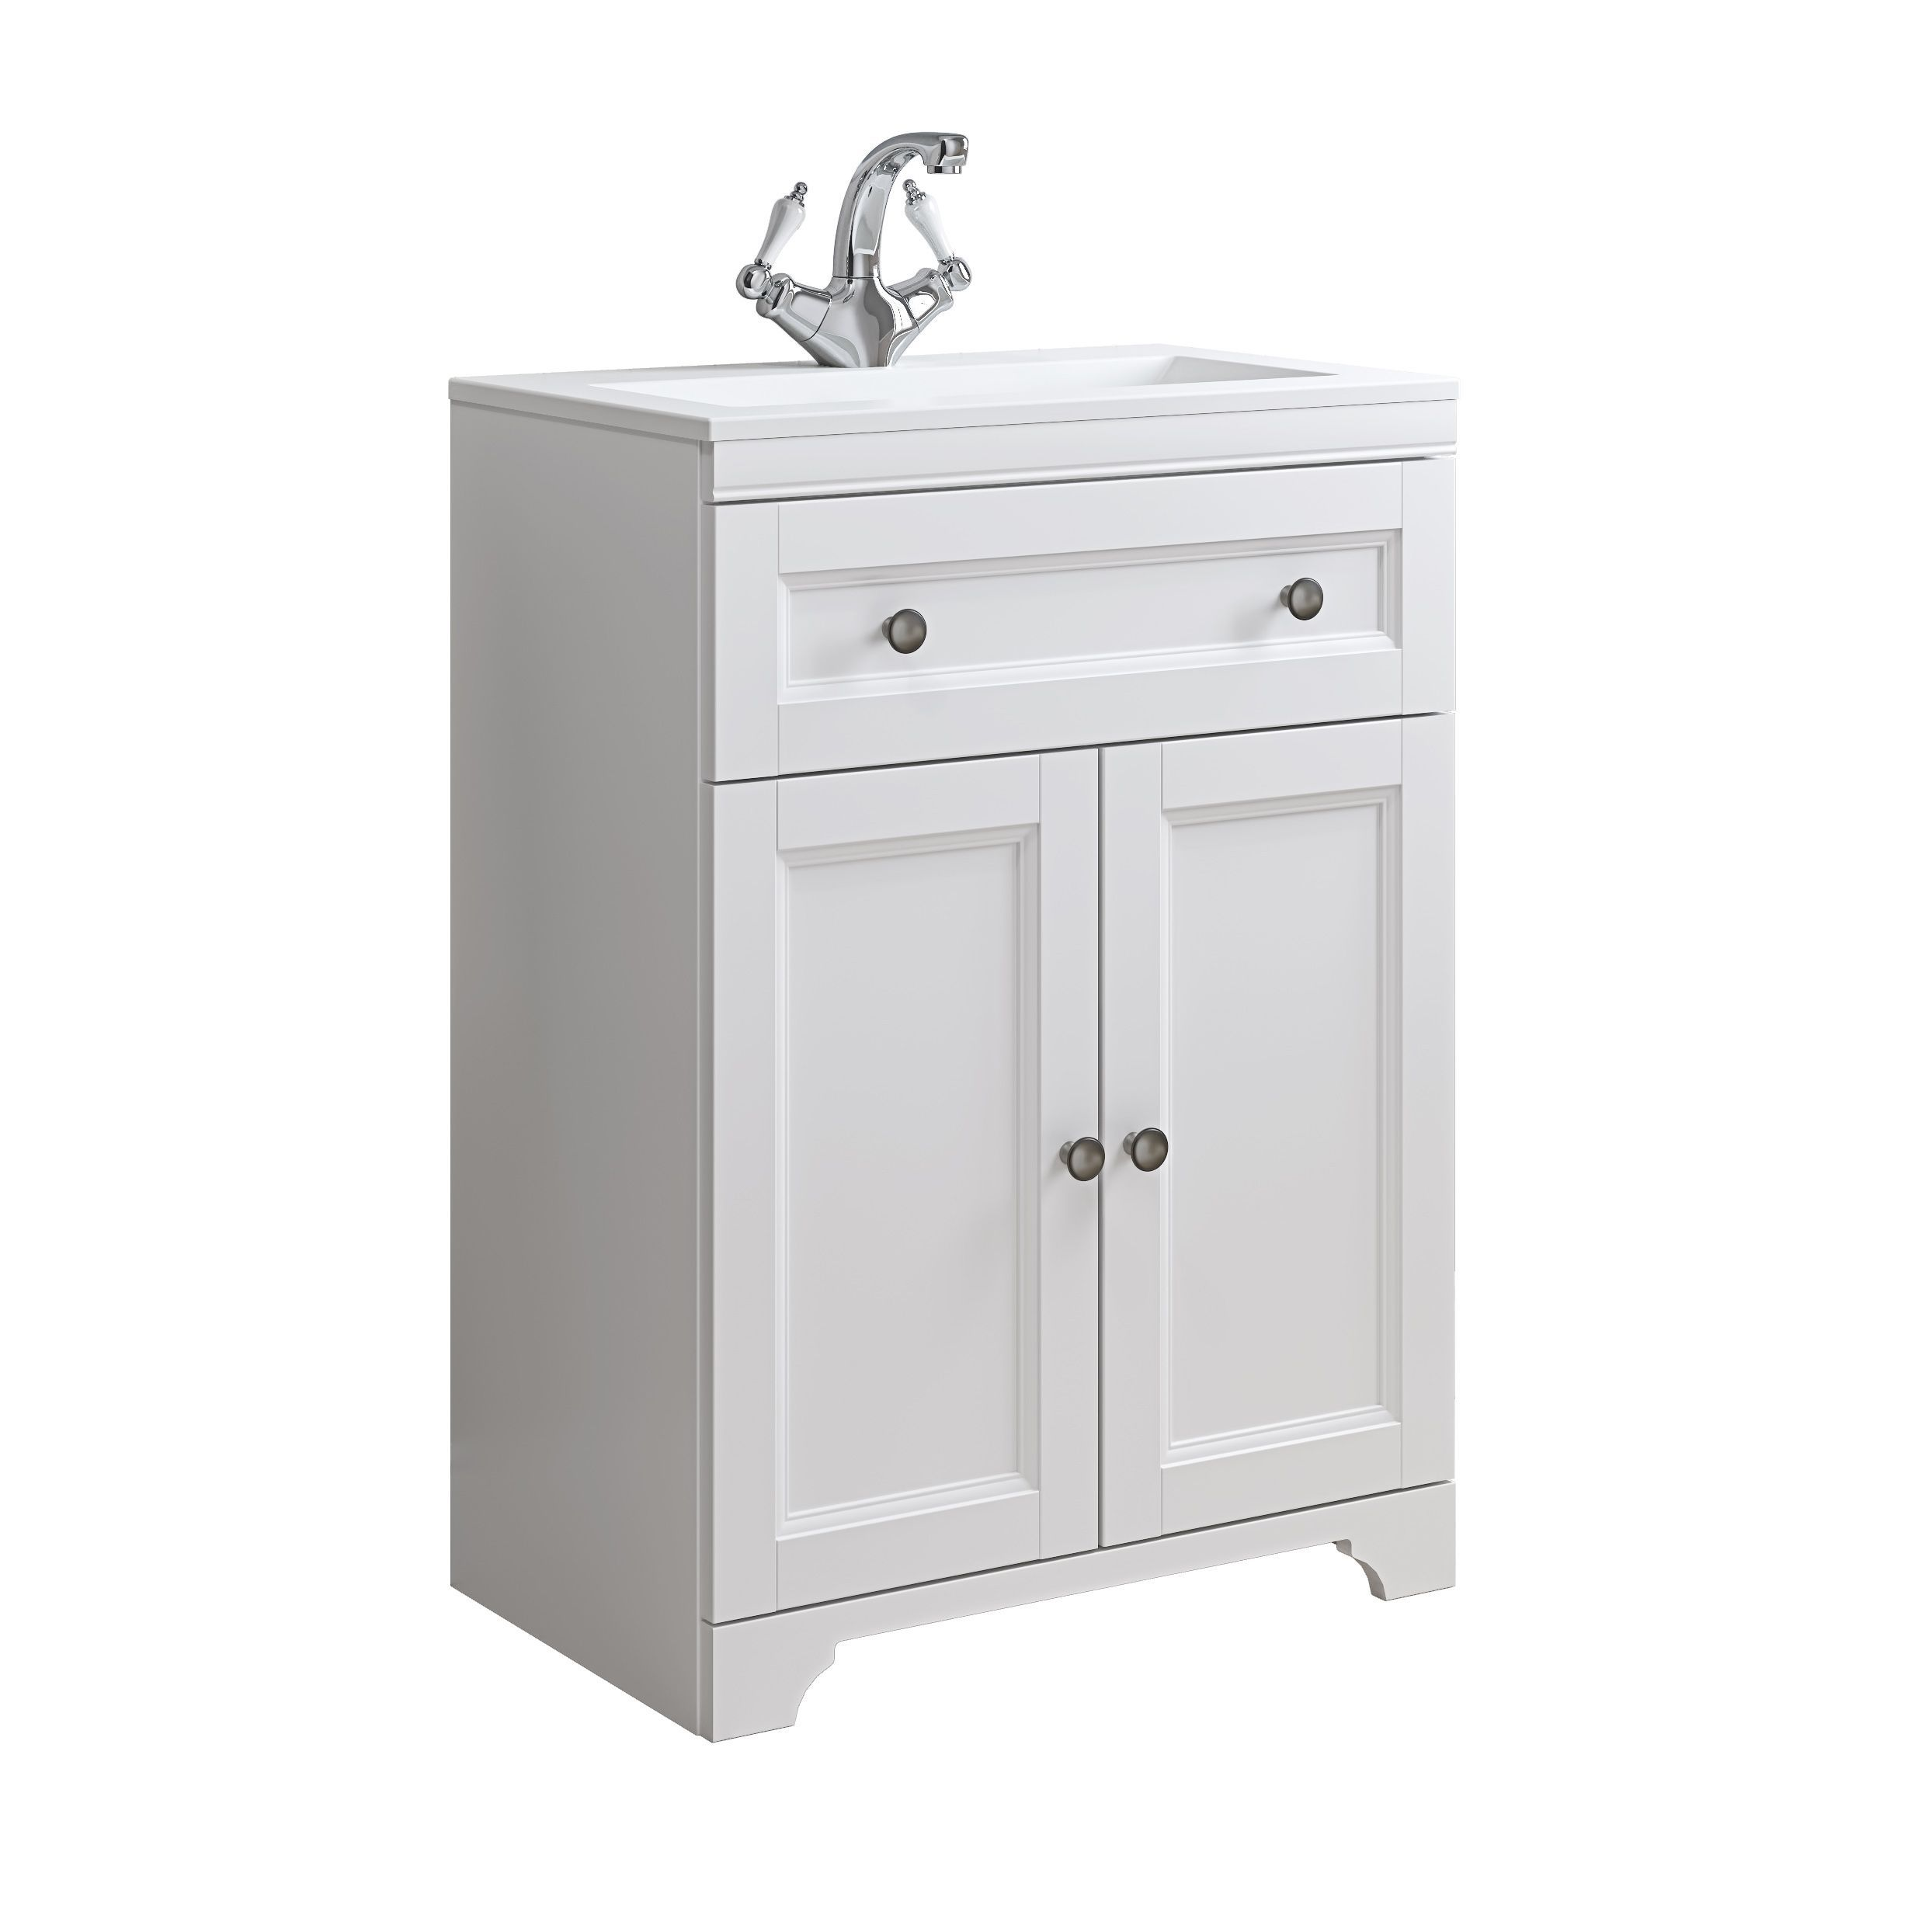 Washstands & Vanity Units Basins Bathroom Departments